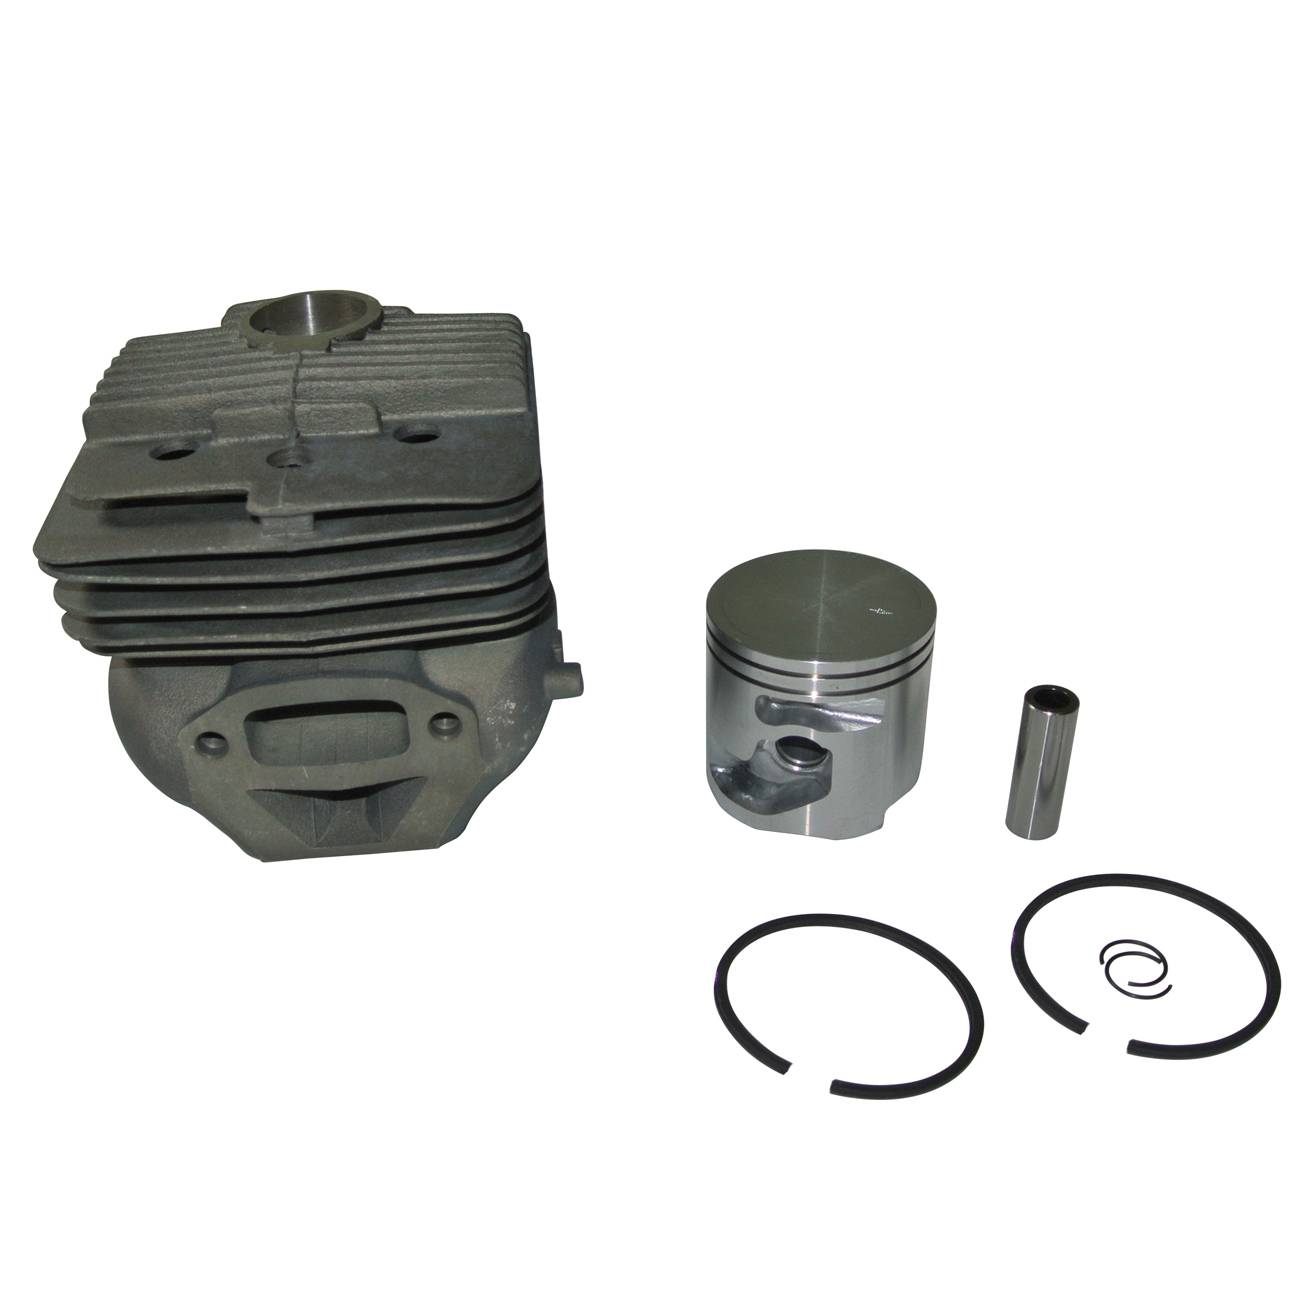 56mm Cylinder & Piston Kit For Husqvarna K960 K970 Cutoff Saws 544 93 56-03 38mm cylinder barrel piston kit